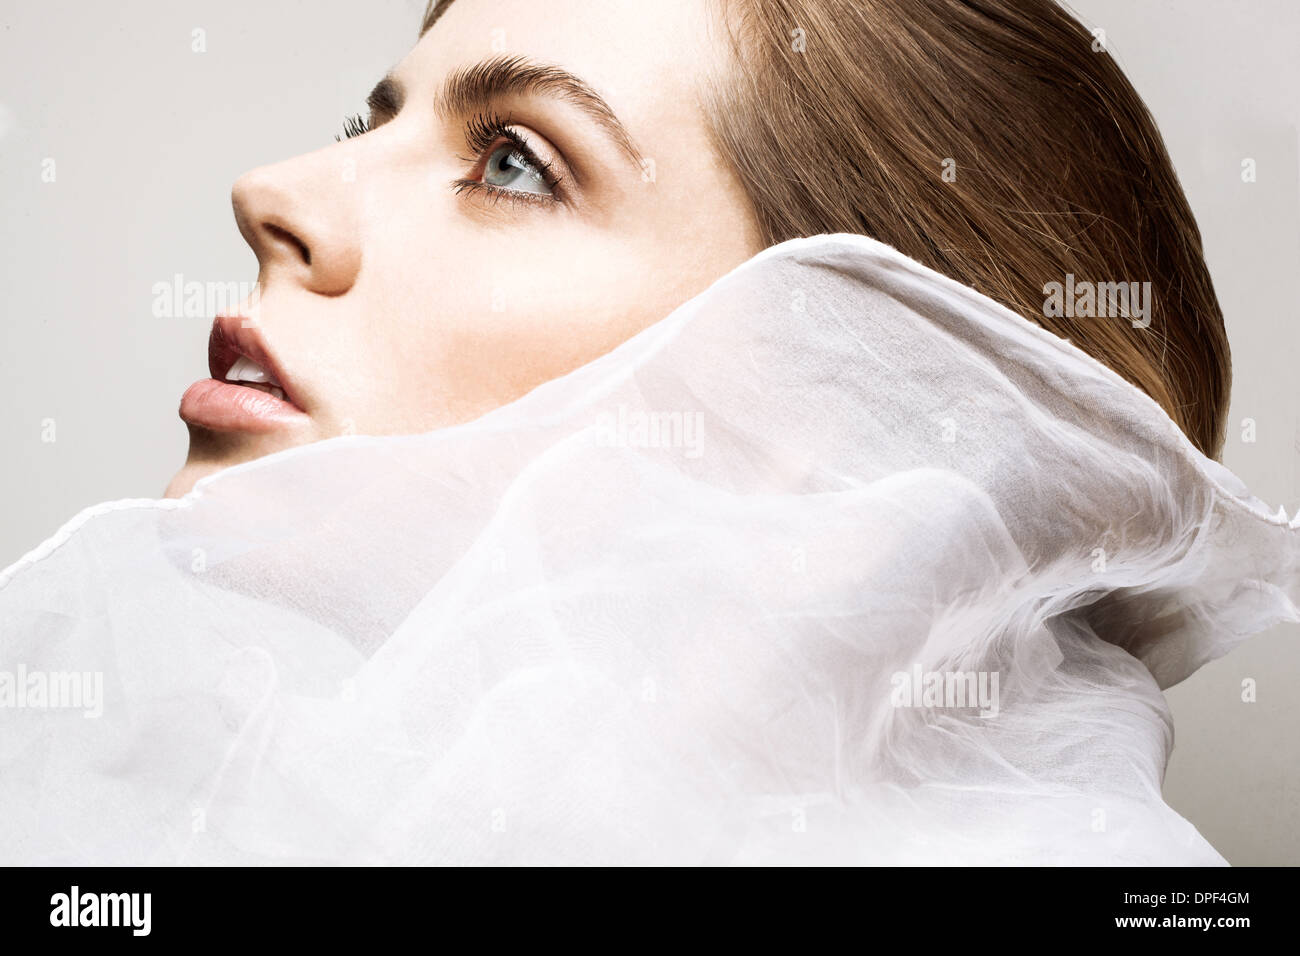 Profile of young woman - Stock Image